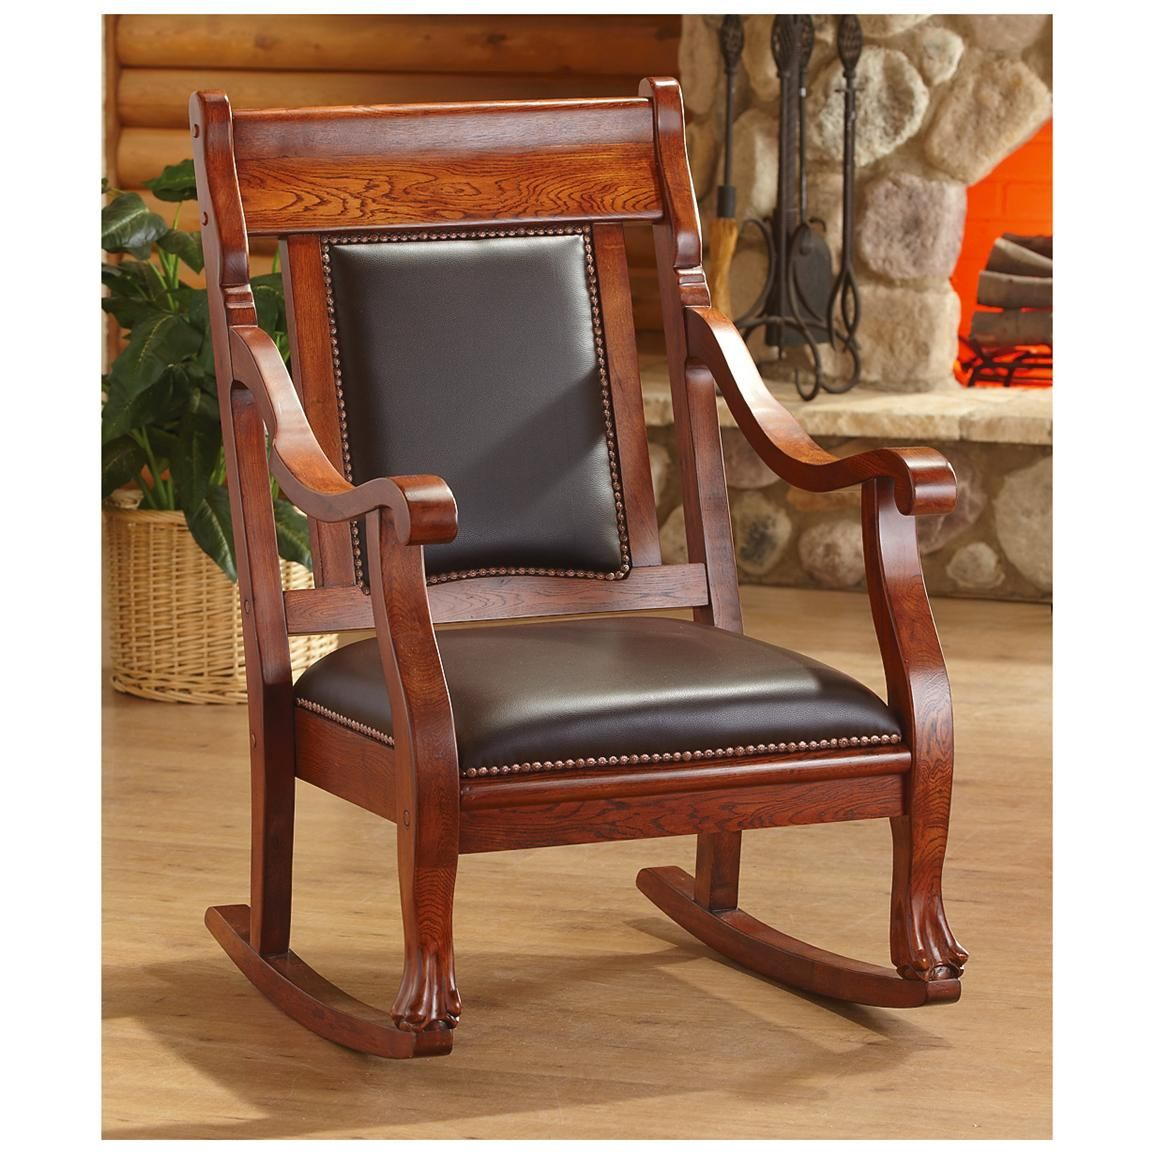 CASTLECREEK™ Rocking Chair Offers Solid Wood Comfort In A